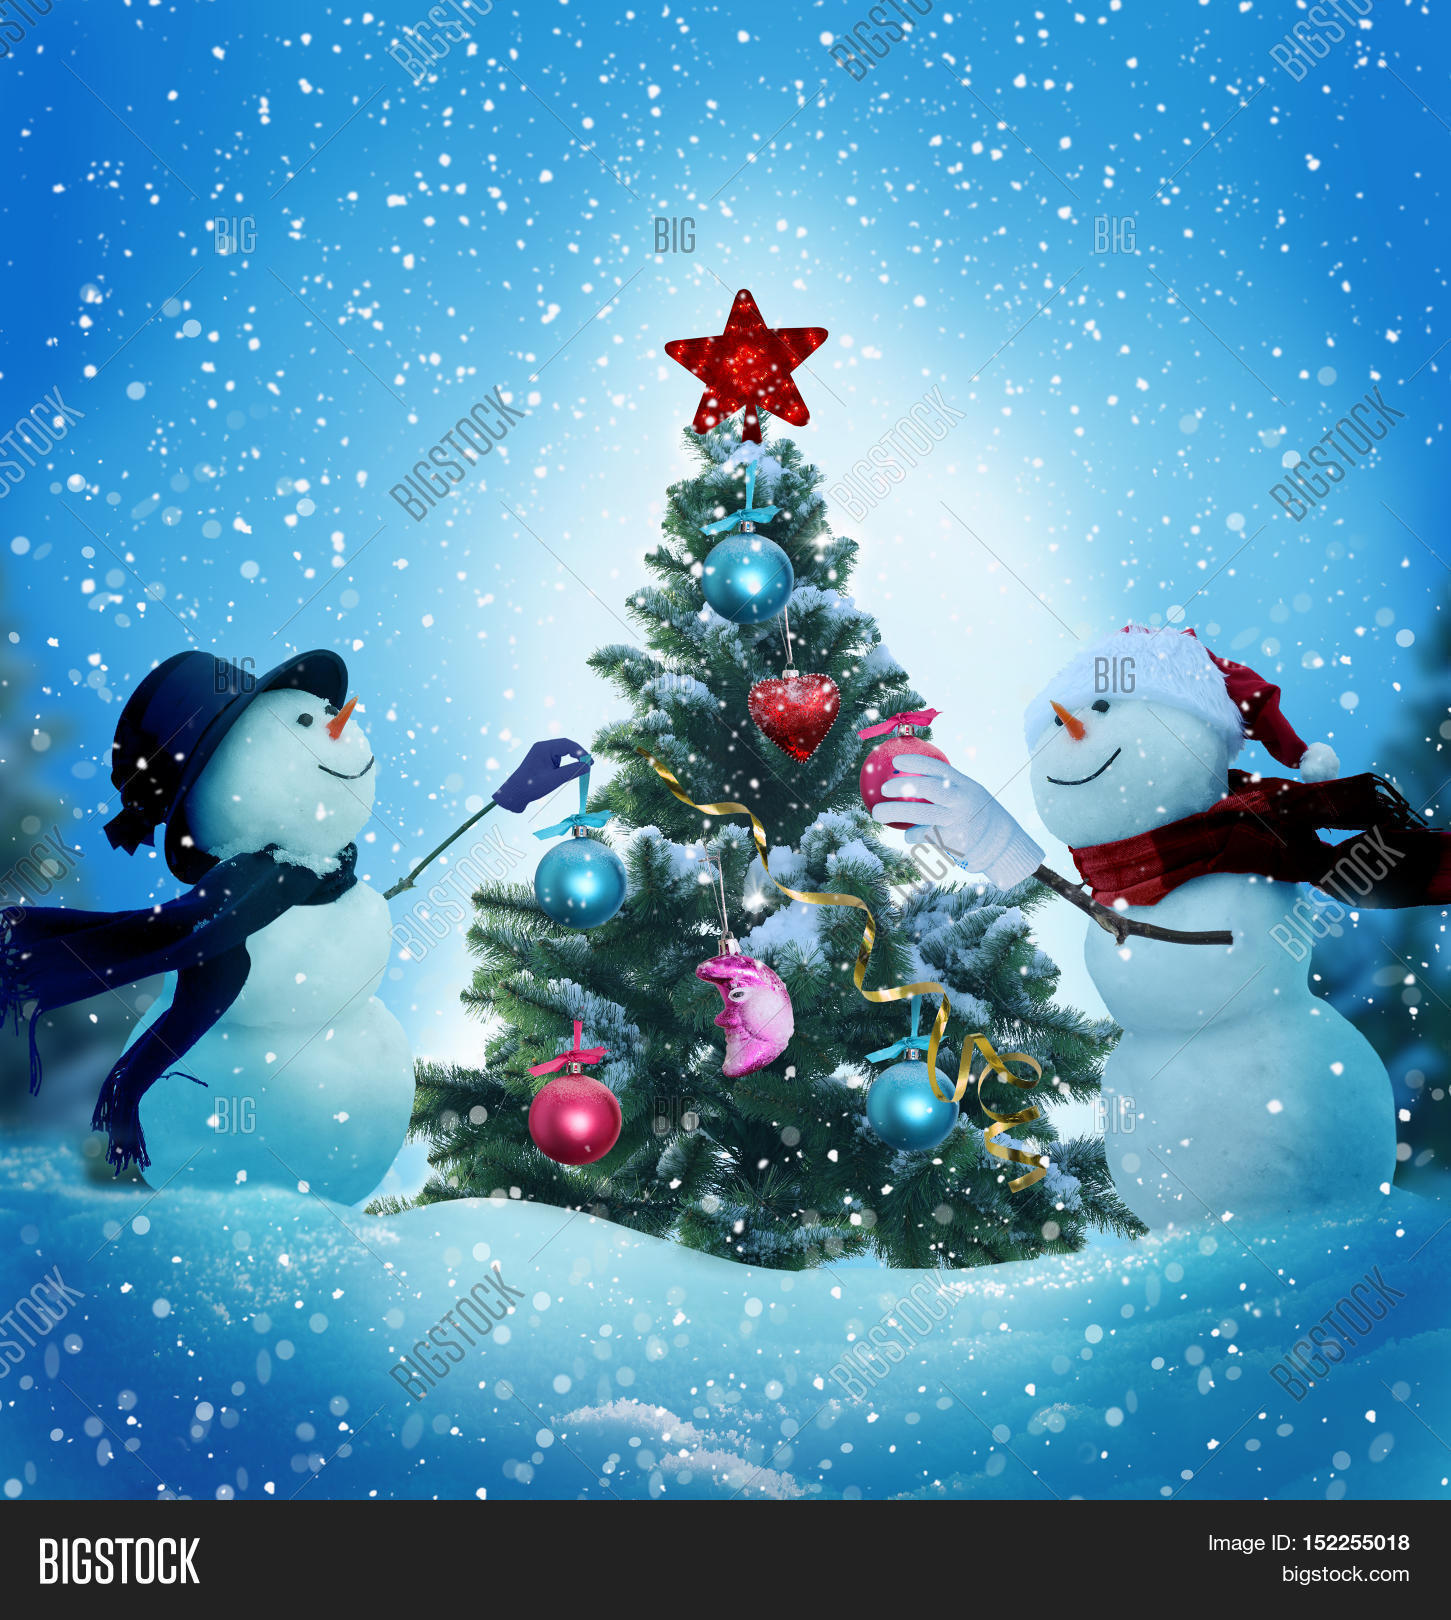 Snowmen decorating christmas tree image photo bigstock for Christmas landscape images